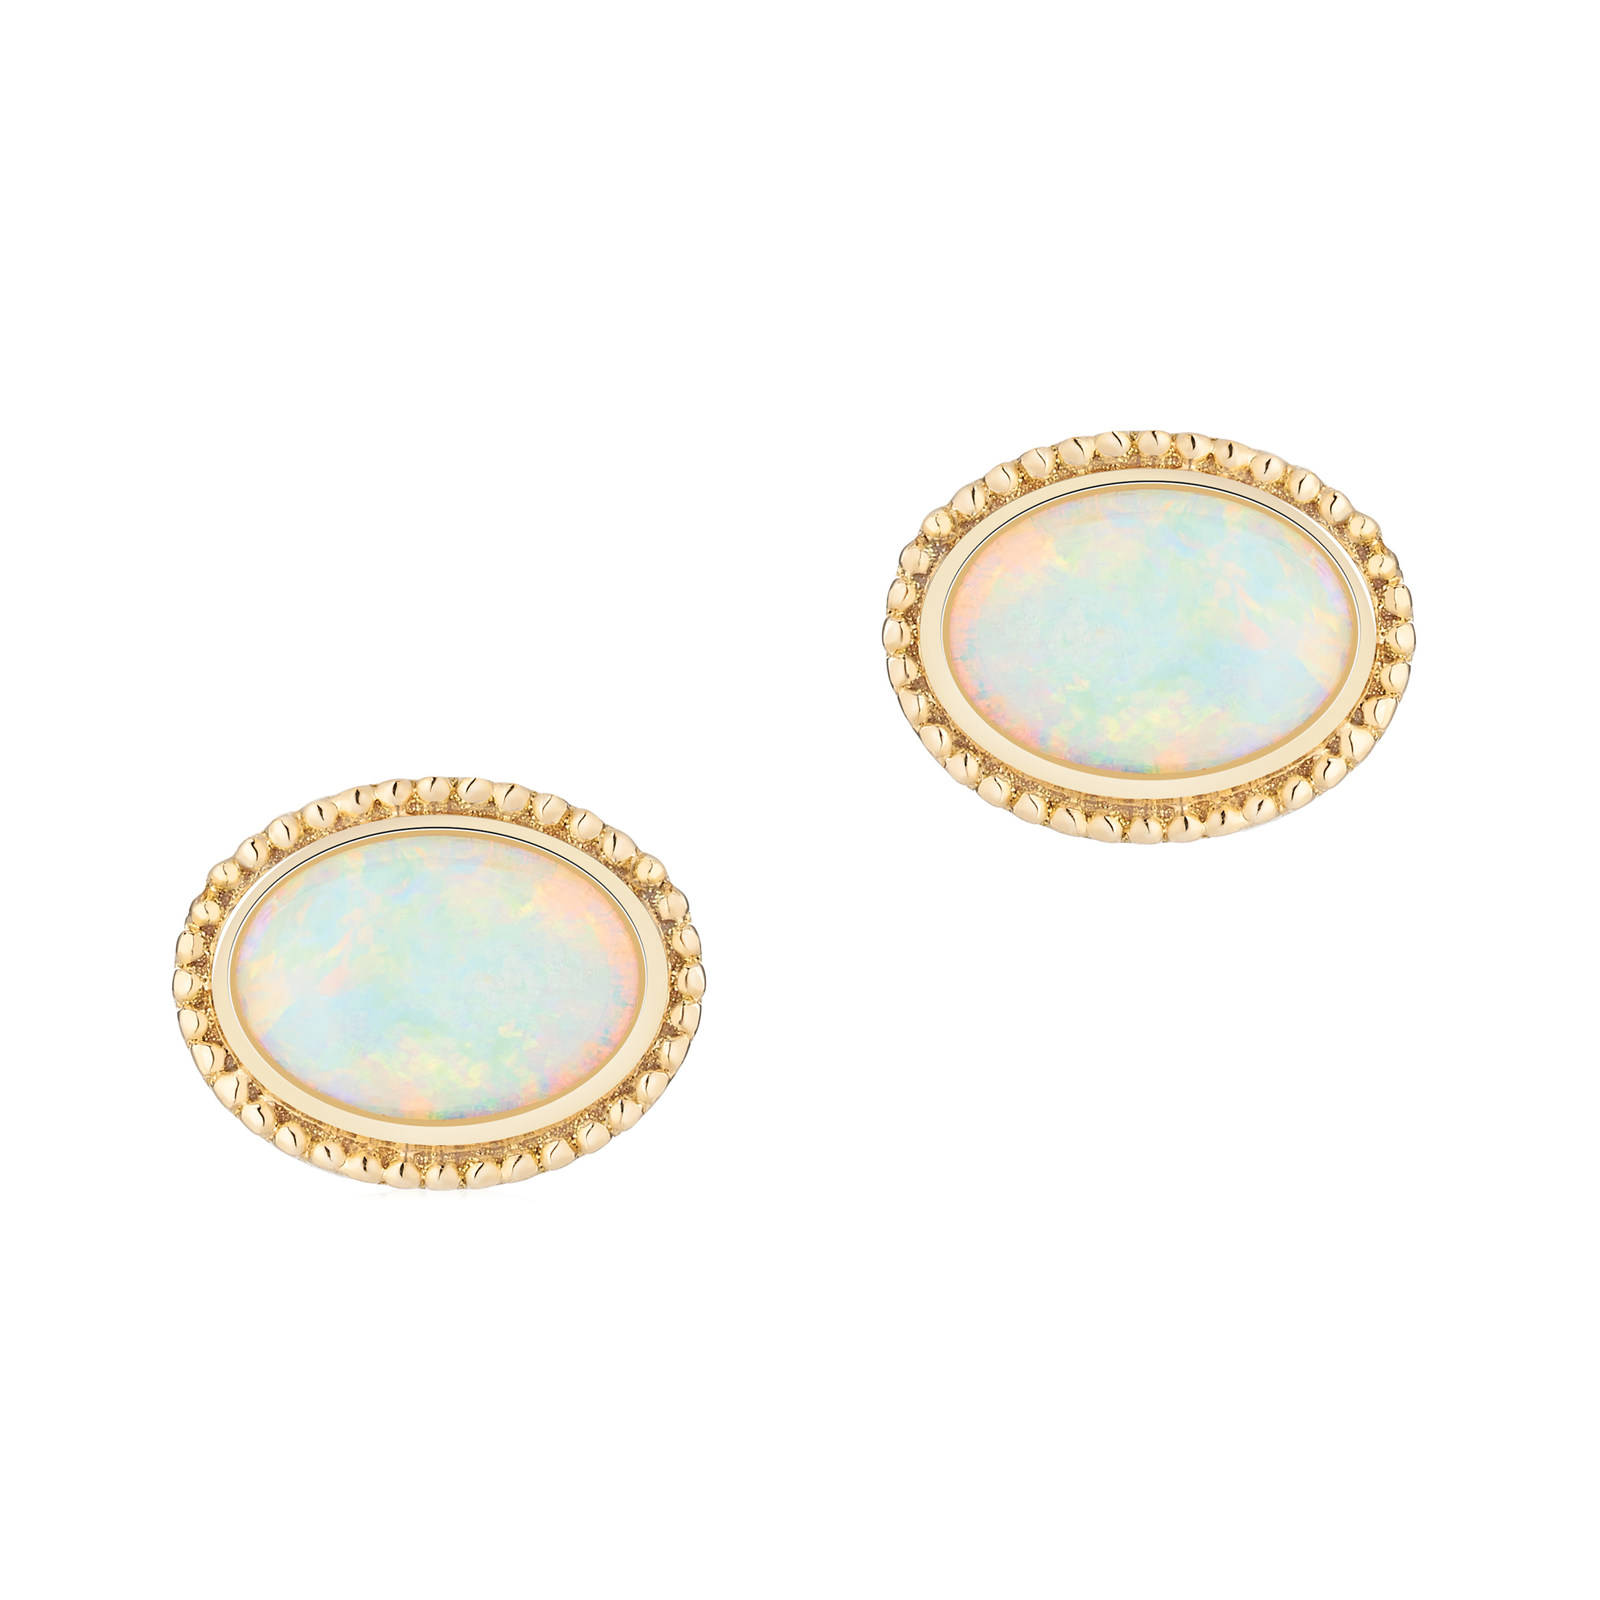 diamond editor and opal zoom jewellery terra of discovery shop crop blue age upscale gold assymetric false the scale ikuria earrings subsampling product